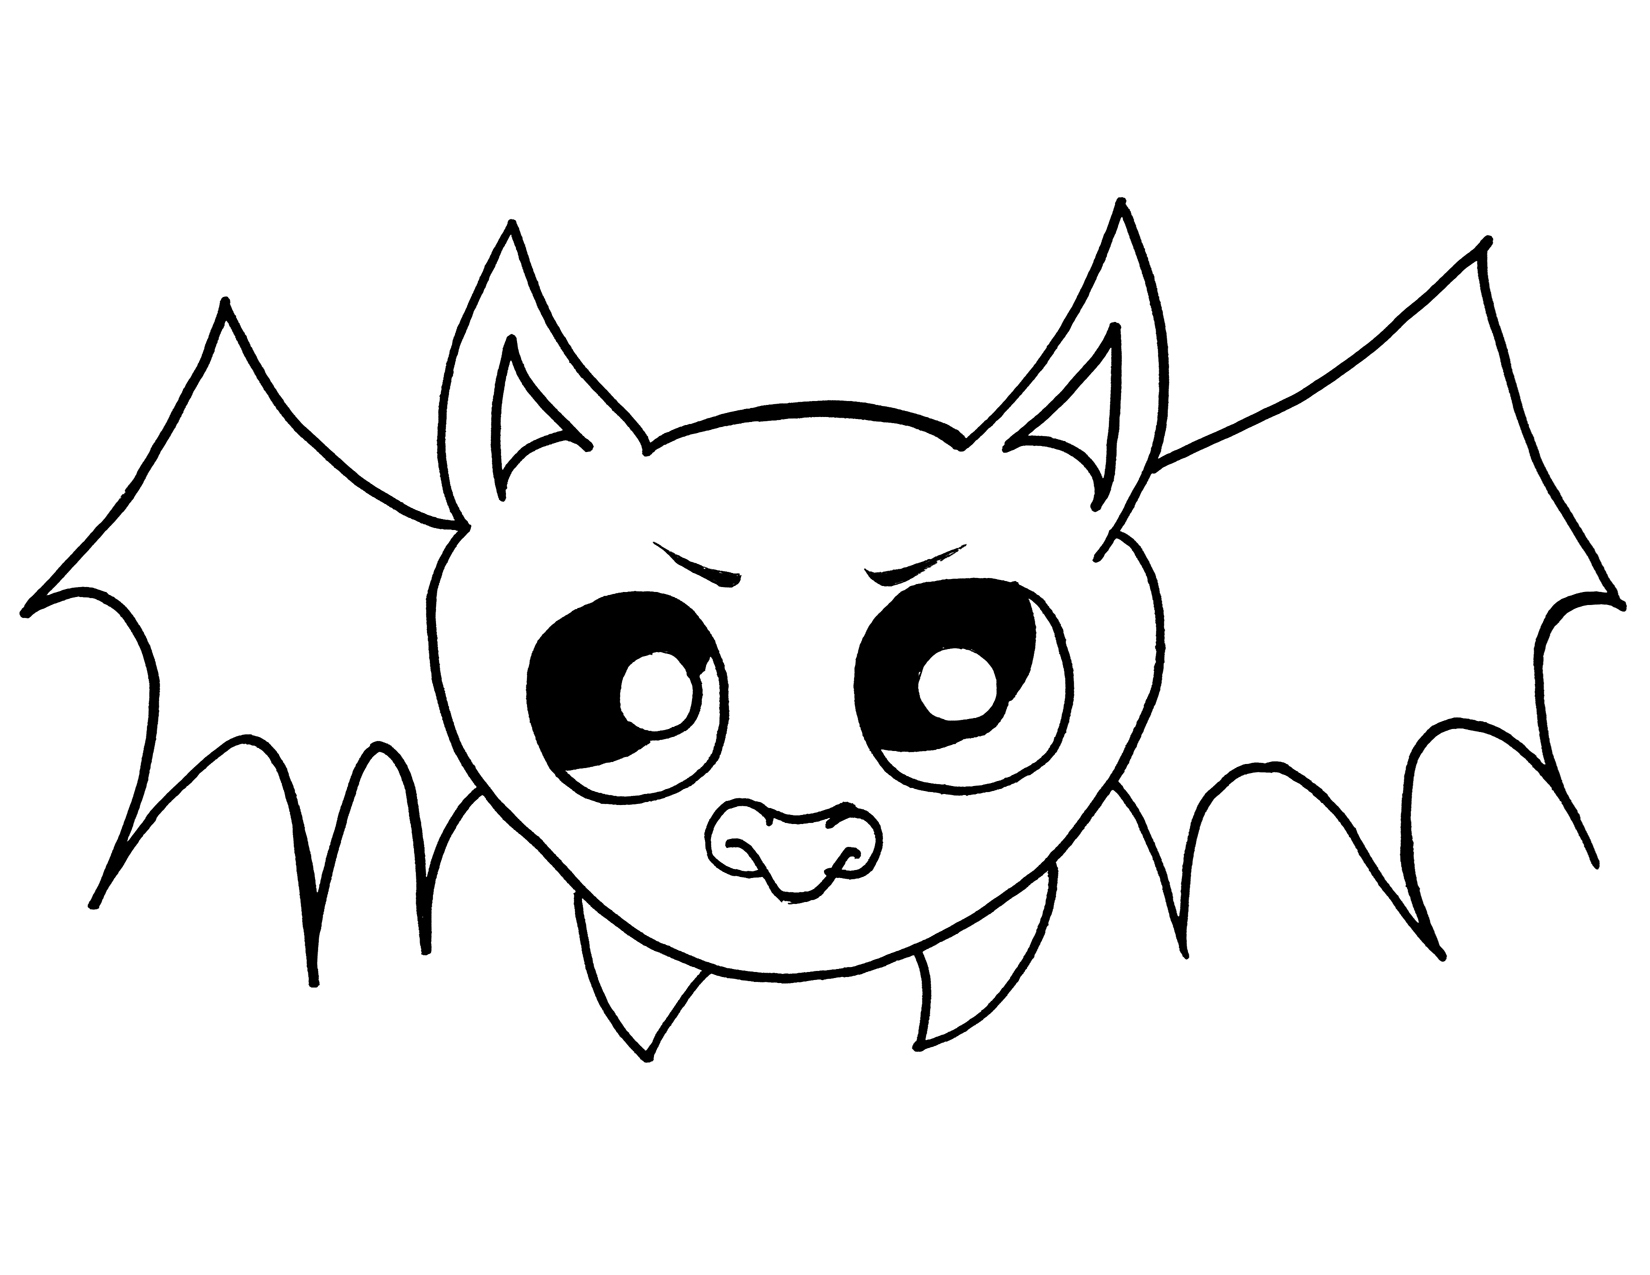 1650x1275 Bats Drawings Halloween Fun For Christmas